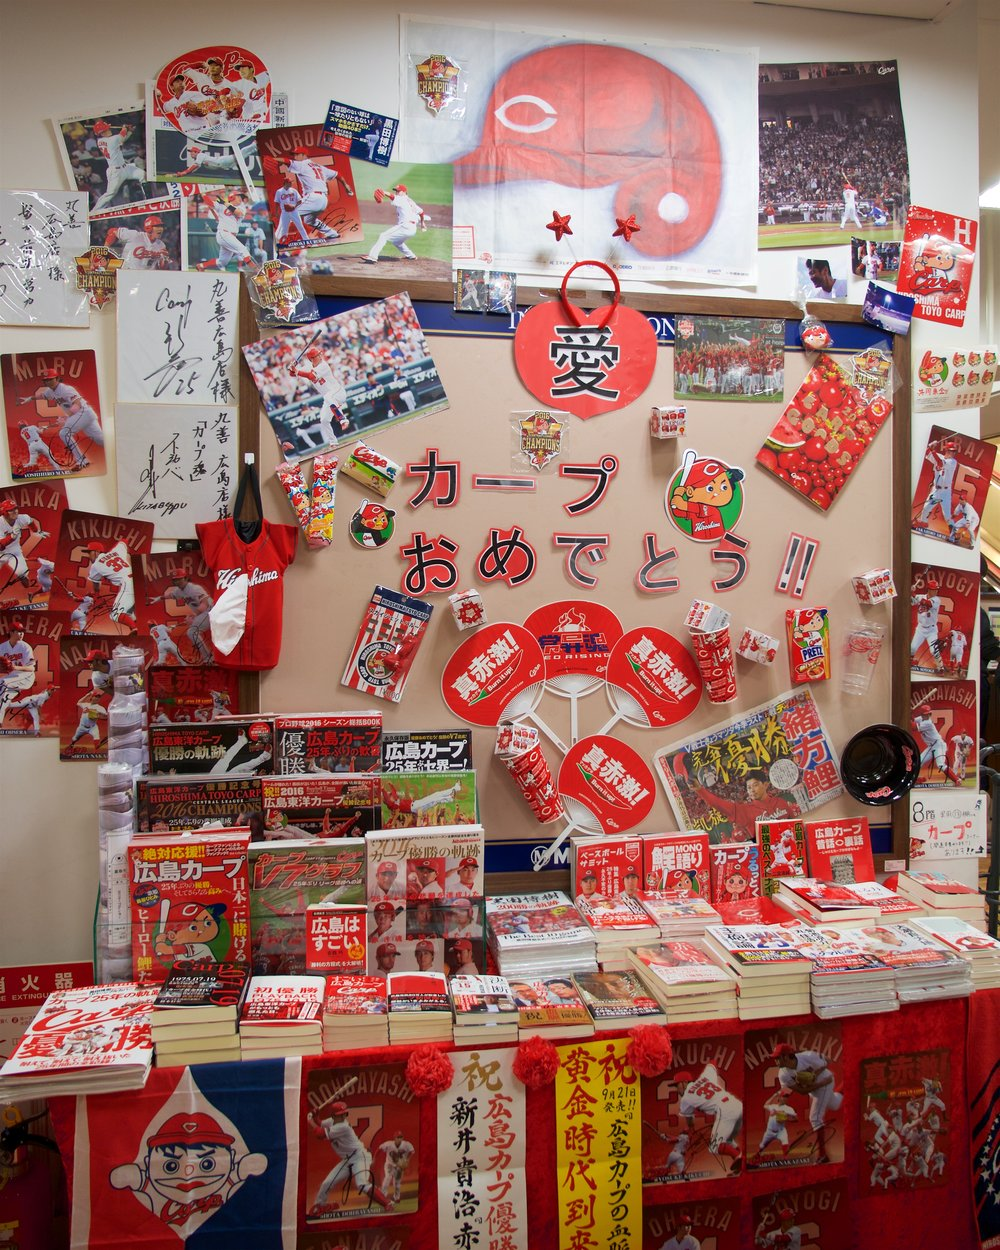 Hiroshima Carp display at Maruzen Bookstore